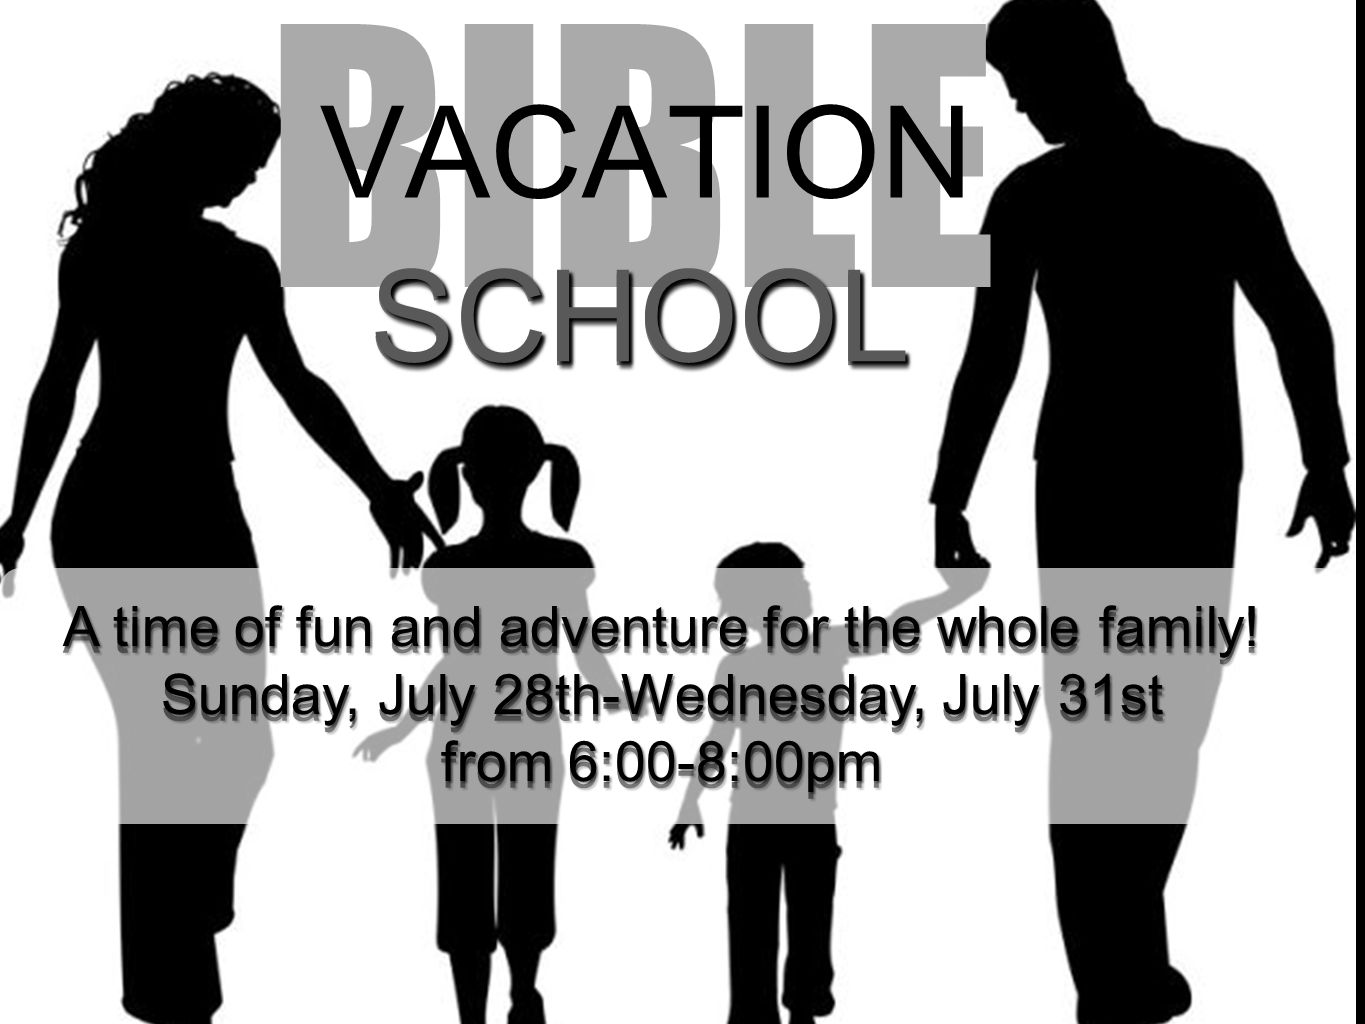 BIBLE VACATION. SCHOOL. A time of fun and adventure for the whole family! Sunday, July 28th-Wednesday, July 31st.